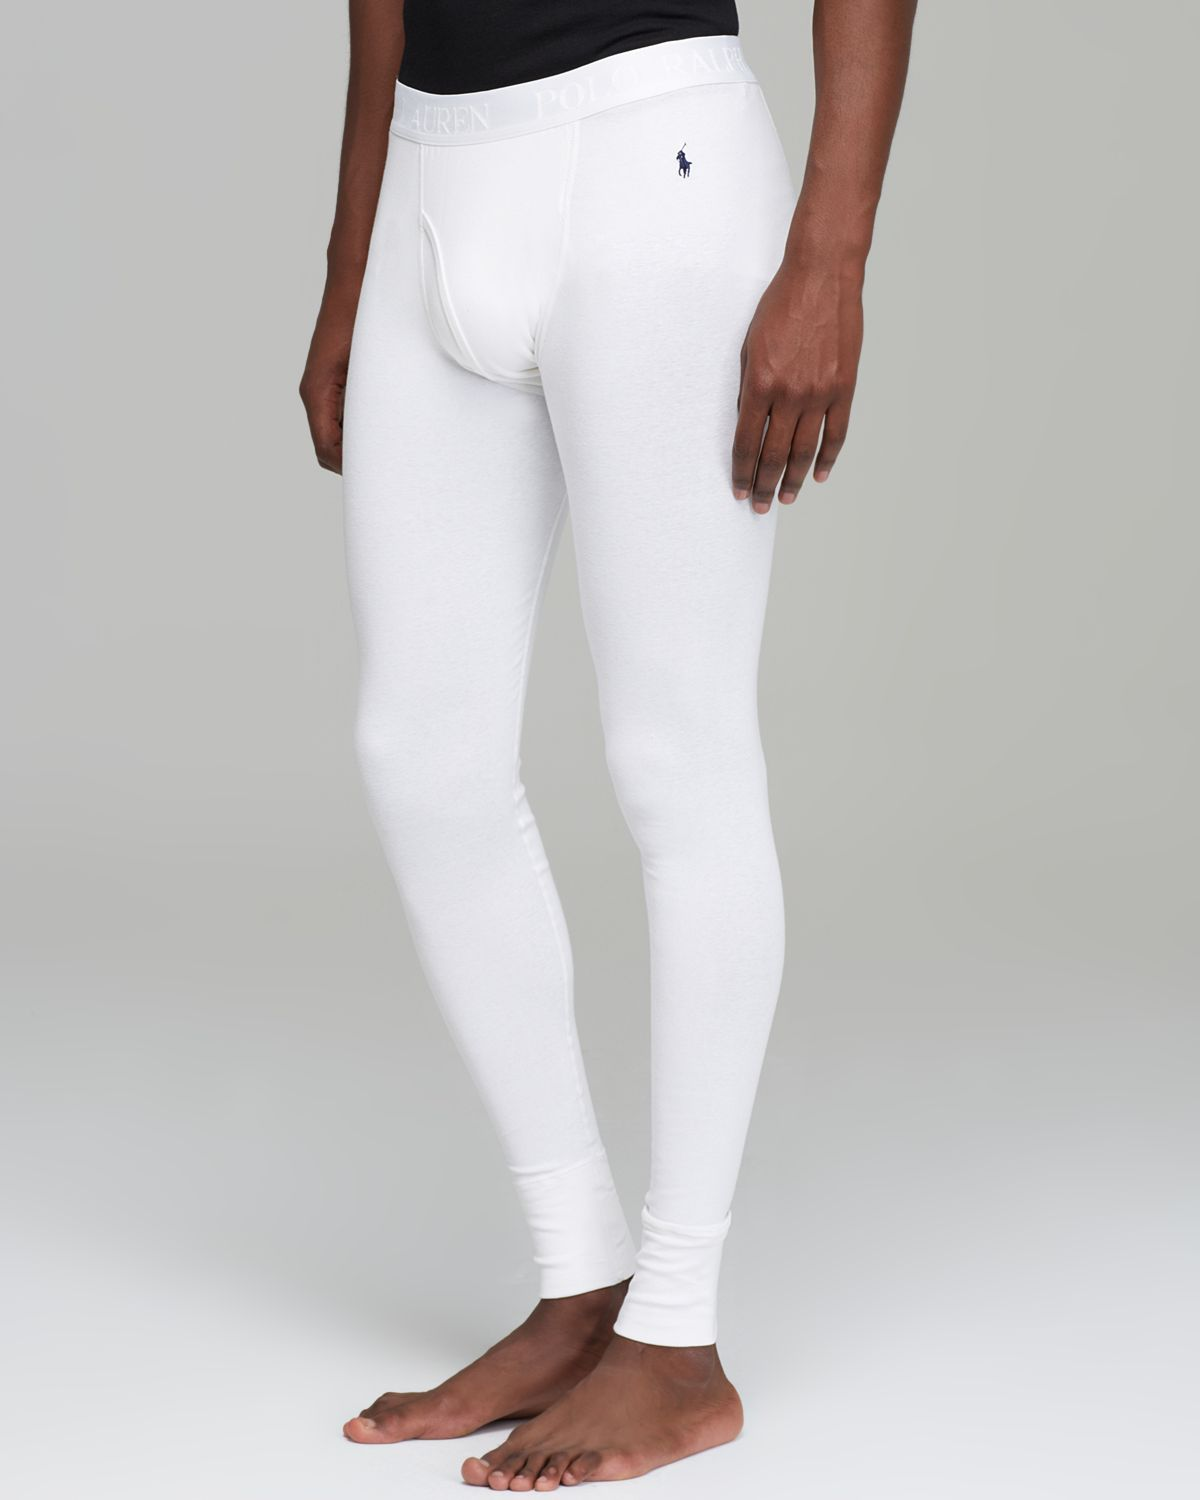 7eb930487bc8 ... free shipping lyst polo ralph lauren long john pants in white for men  e4d80 42ff2